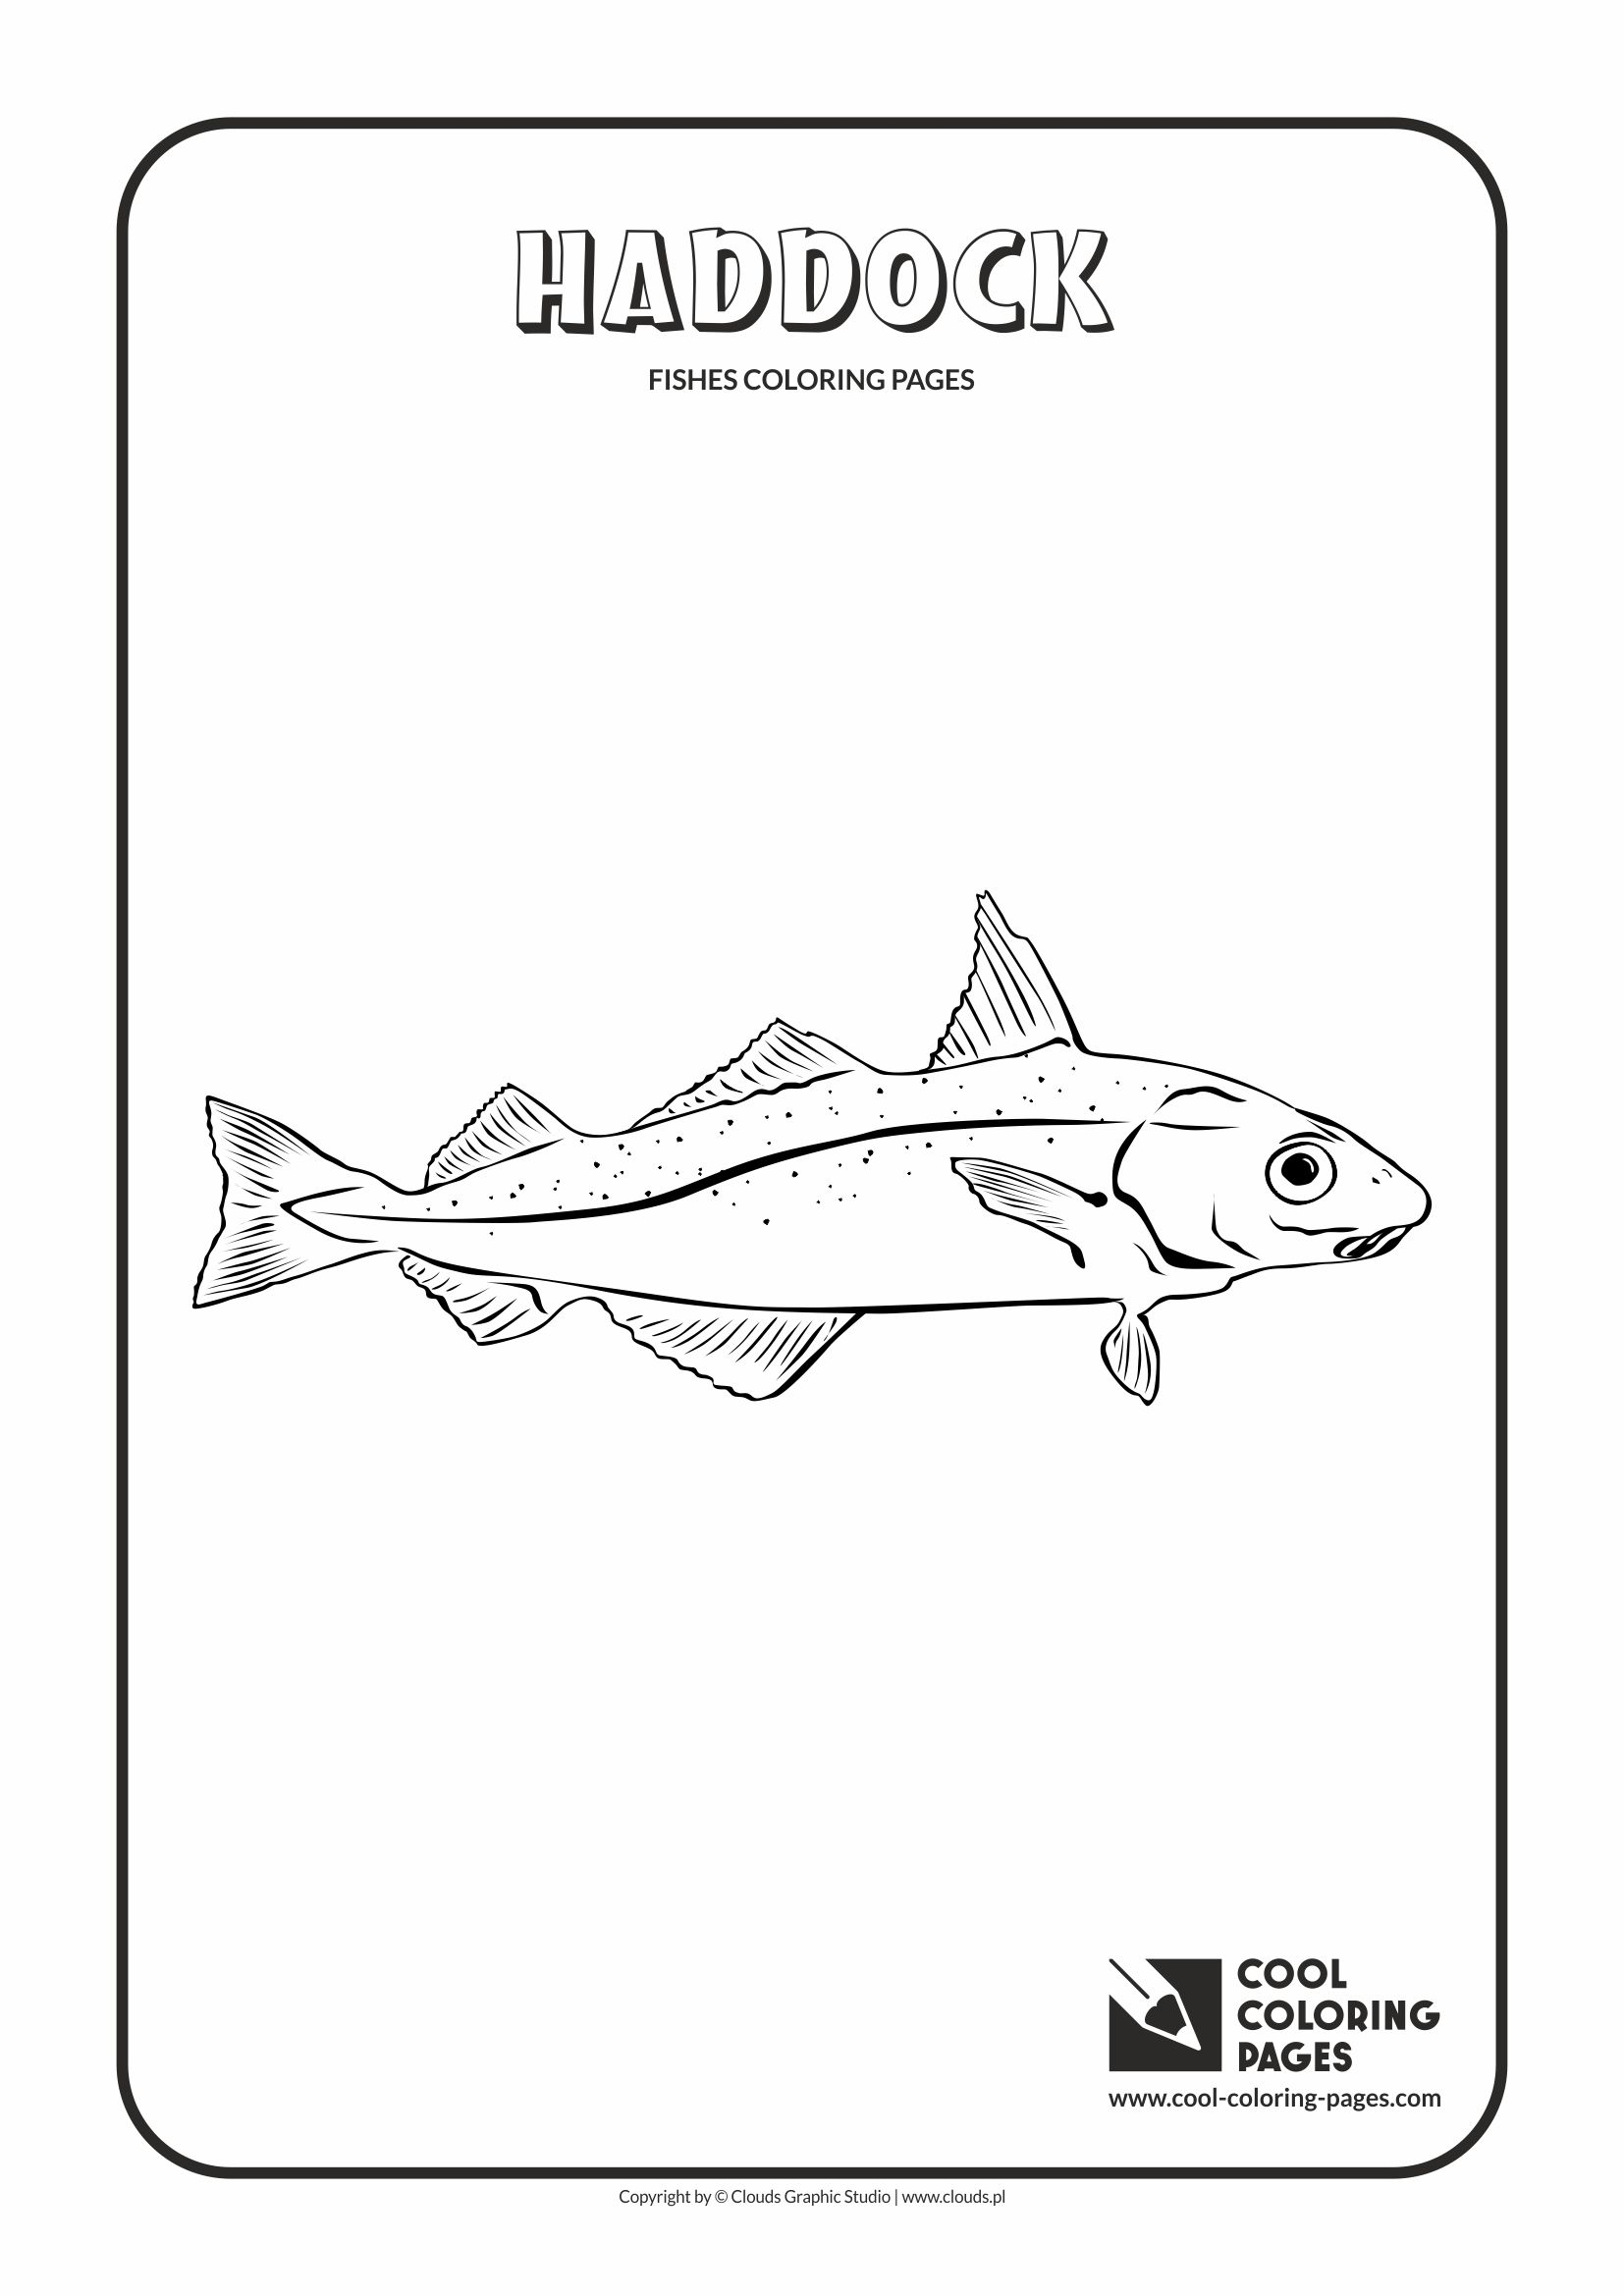 Cool Coloring Pages - Animals / Haddock / Coloring page with haddock